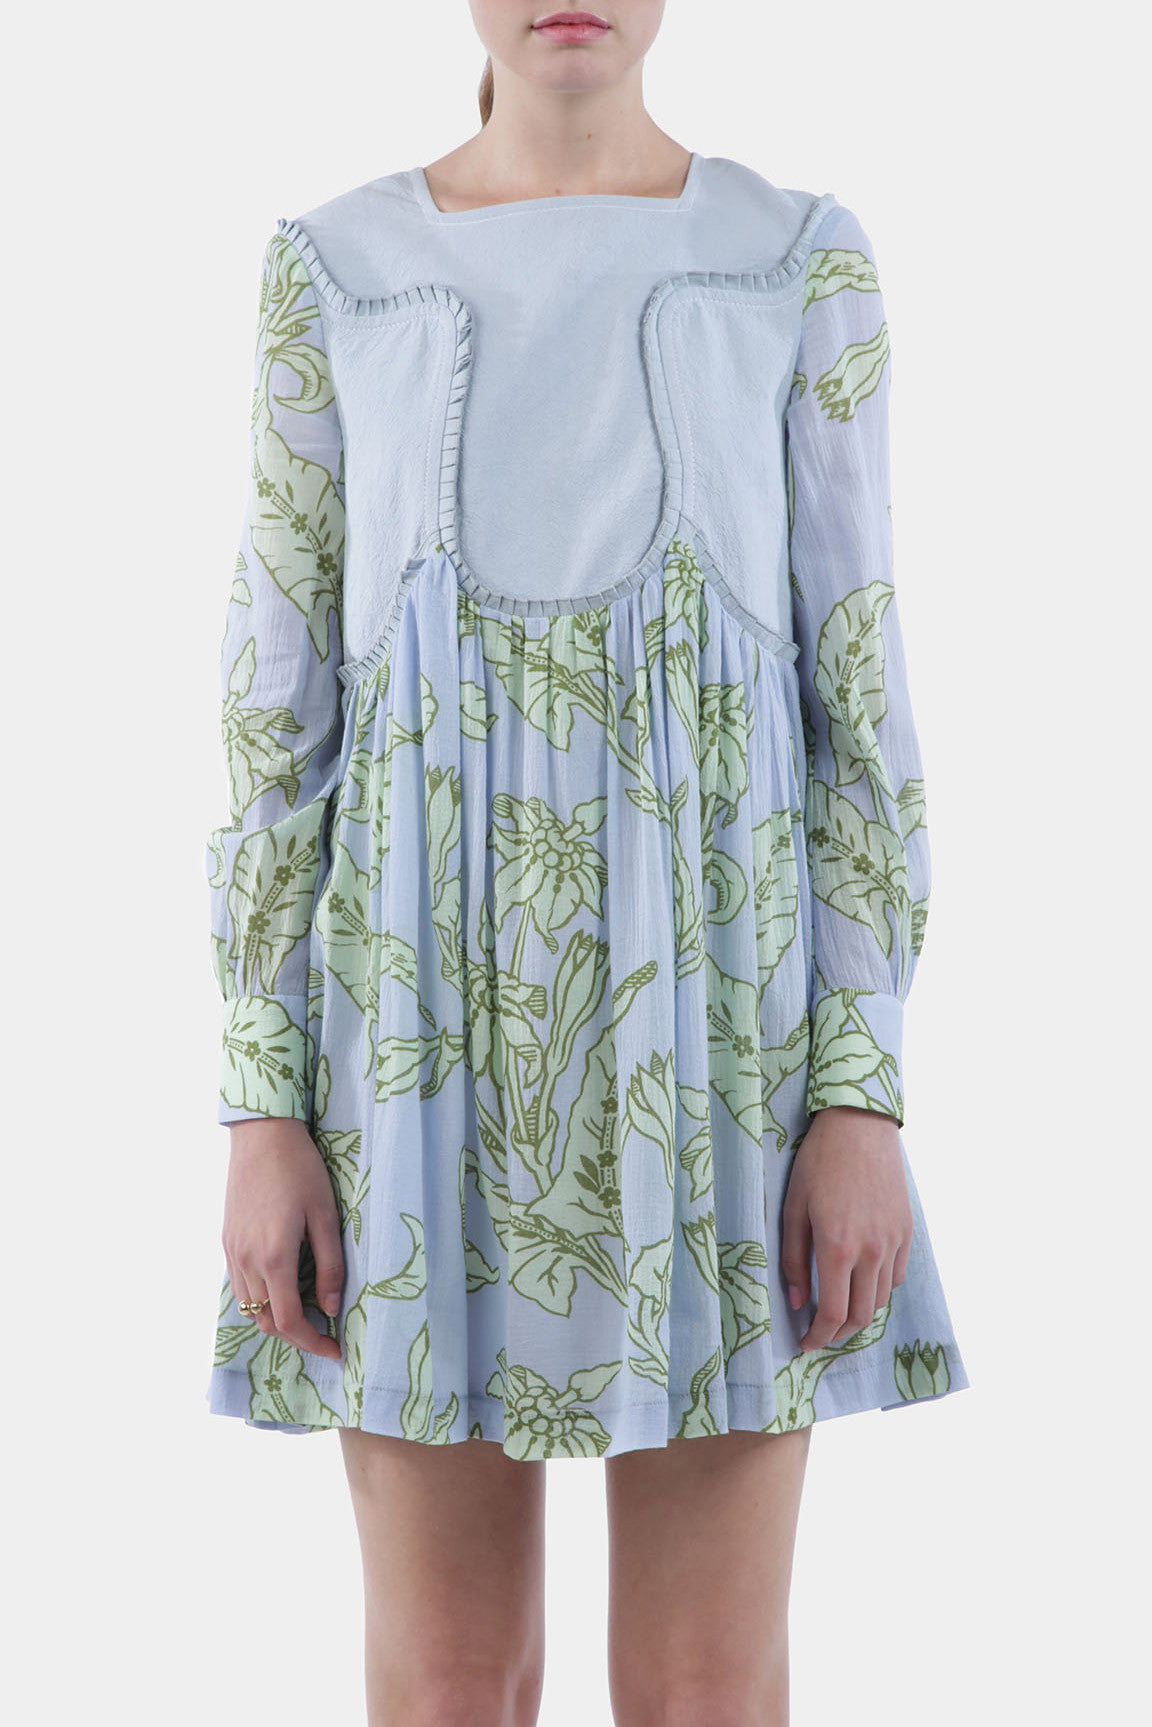 Greenhouse Contrast Dress